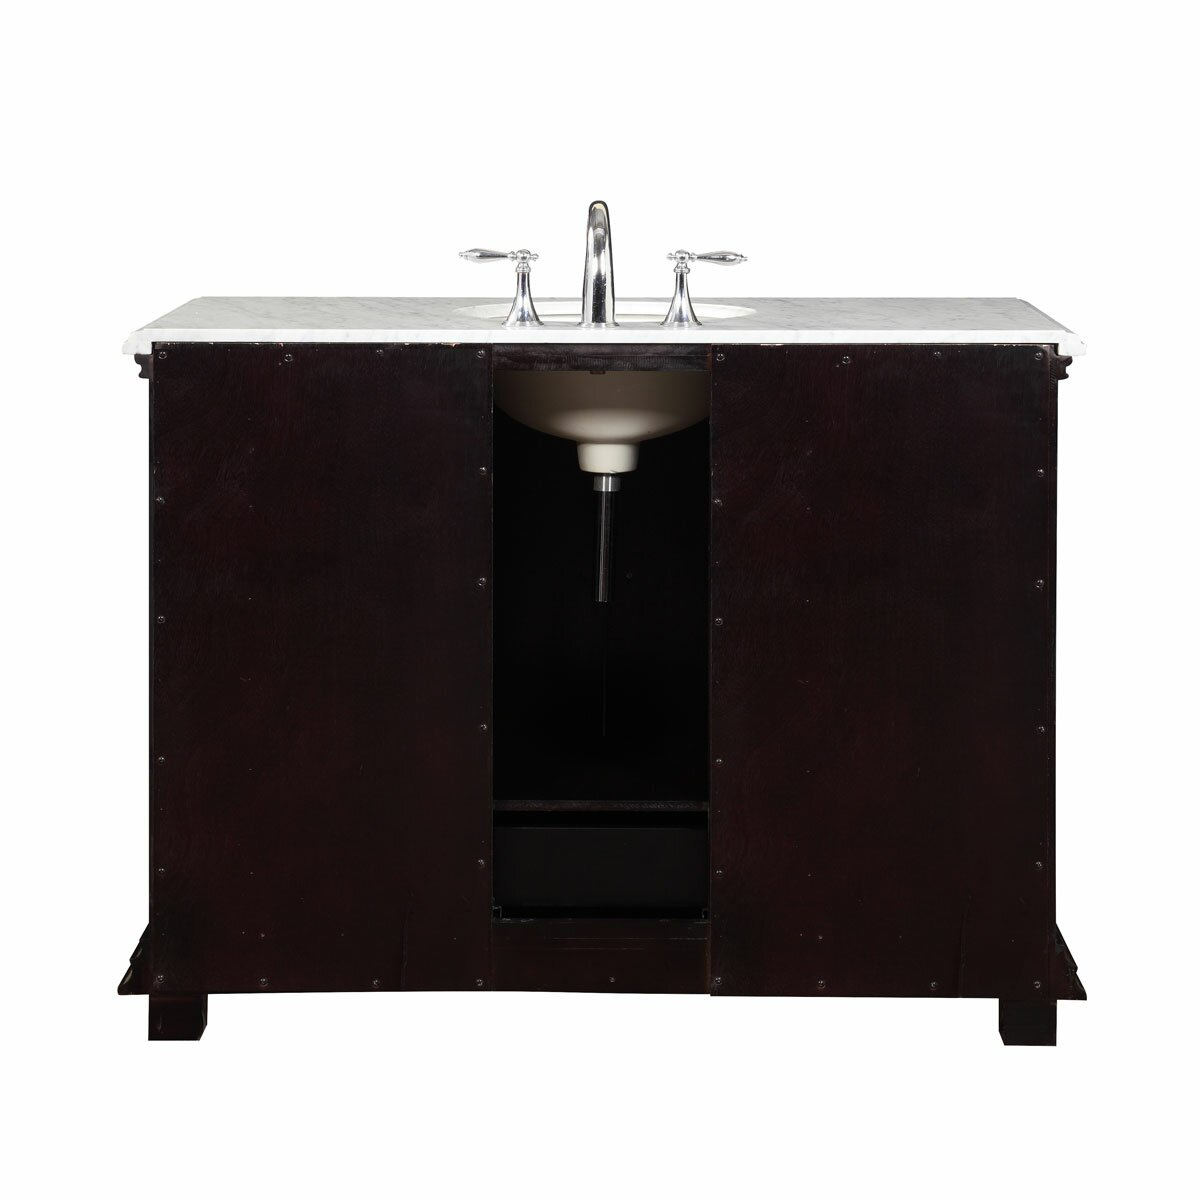 Silkroad Exclusive 48 Single Sink Bathroom White Marble